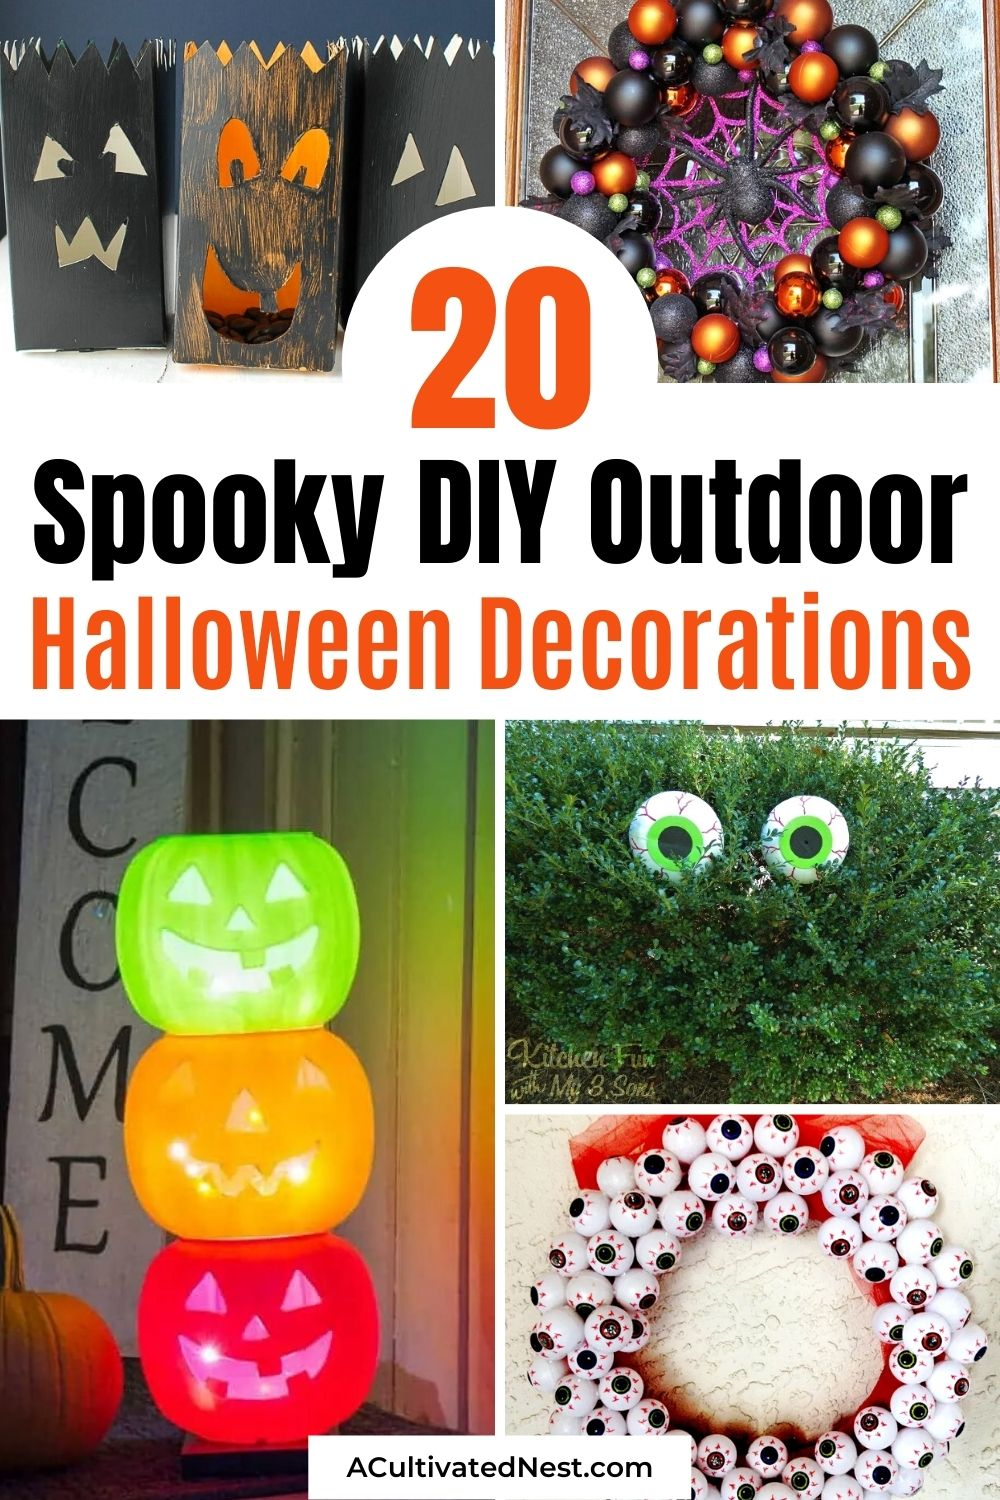 20 DIY Outdoor Halloween Decorations- Make your yard fun and festive for Halloween on a budget with these 20 DIY outdoor Halloween decorations! There are so many spooky and fun DIY Halloween décor ideas! | #HalloweenDecor #diyProects #HalloweenCrafts #HalloweenDecorations #ACultivatedNest